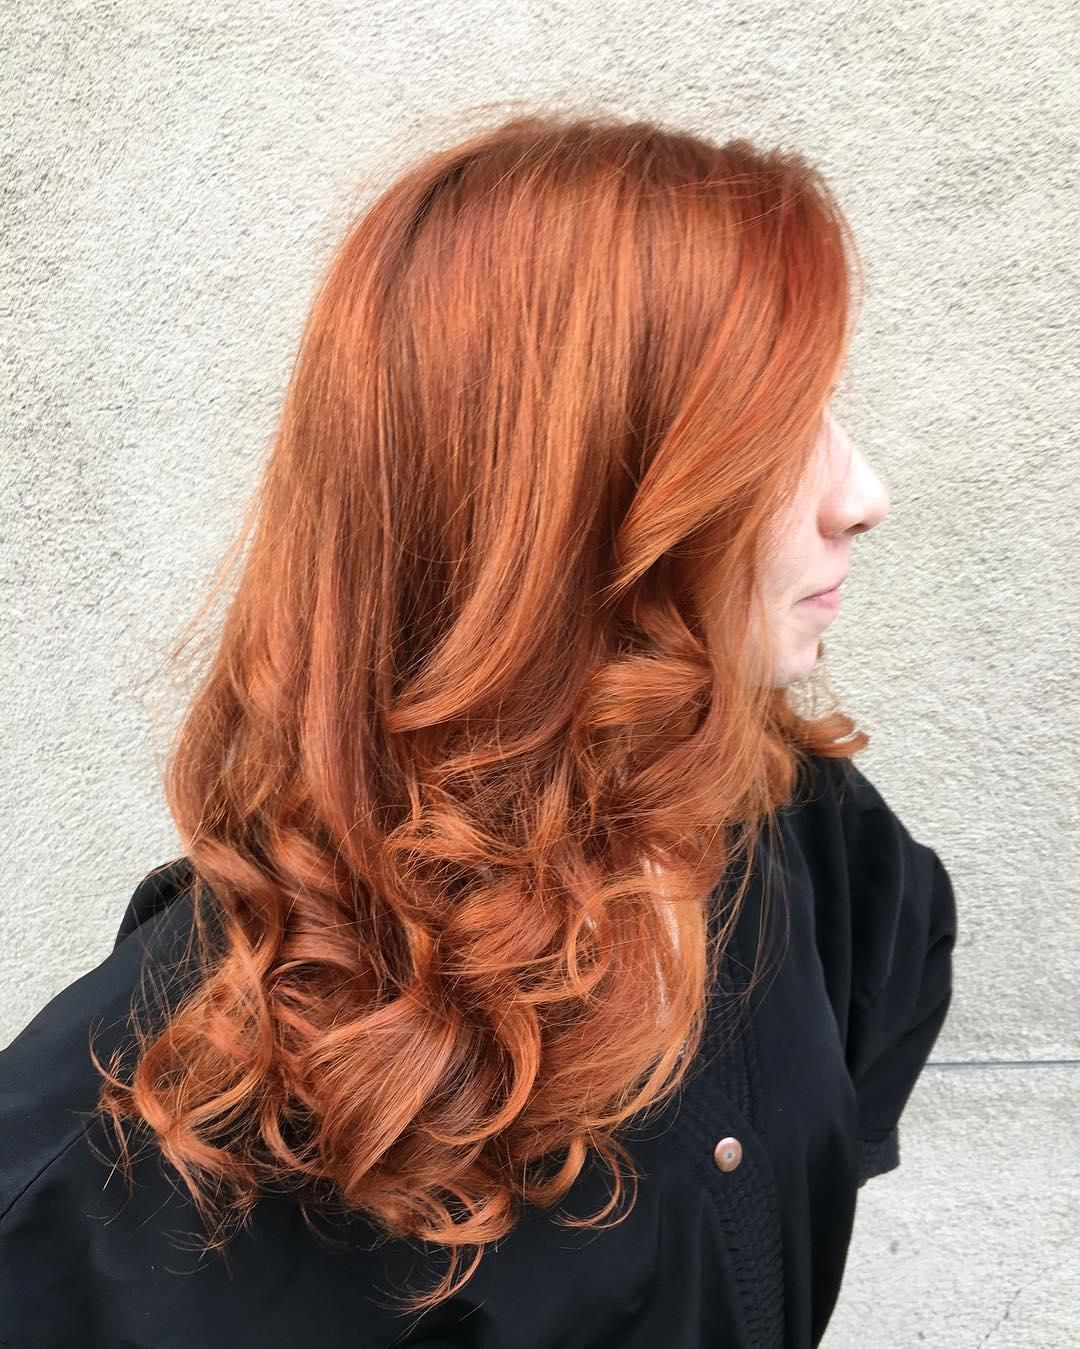 Hair Color Landing Page Aveda Hair Color Aveda Hair Red Hair Color